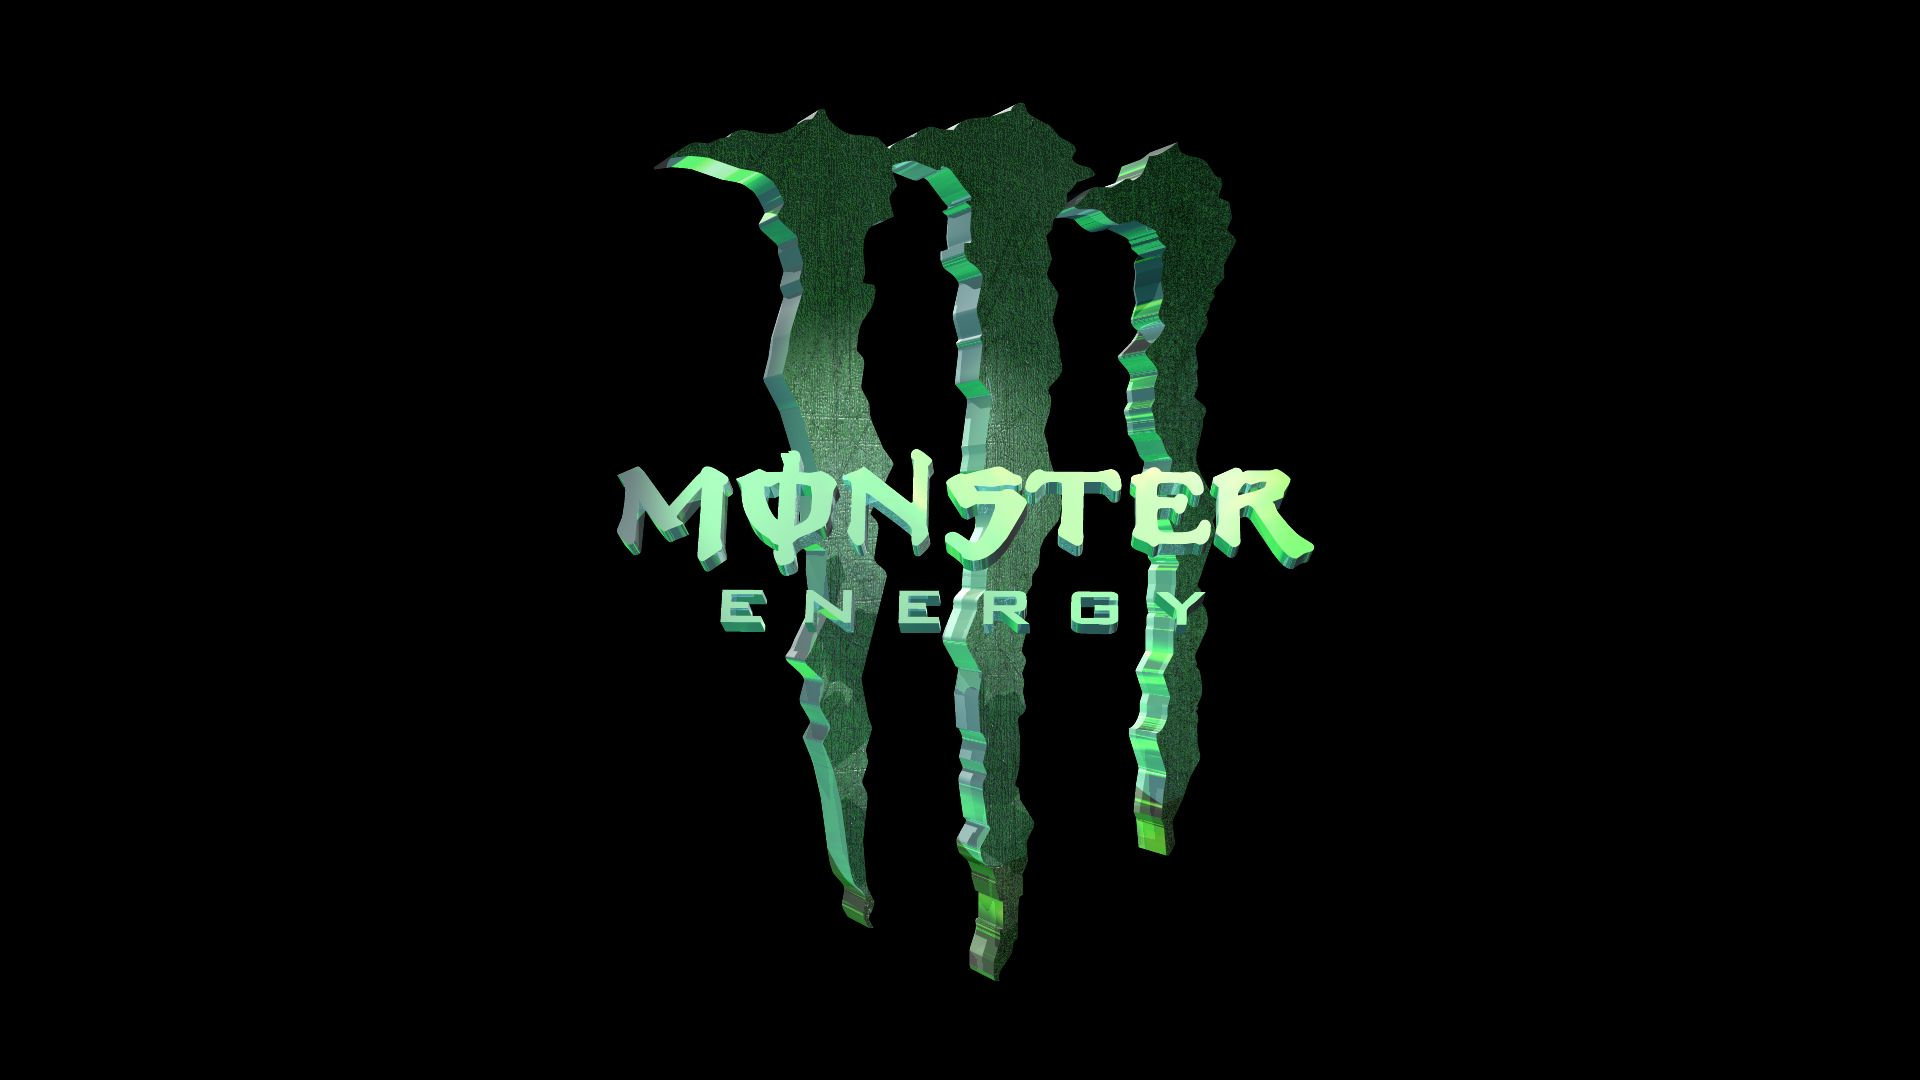 Monster-Energy-Collection-For-Free-Download-wallpaper-wpc5807328